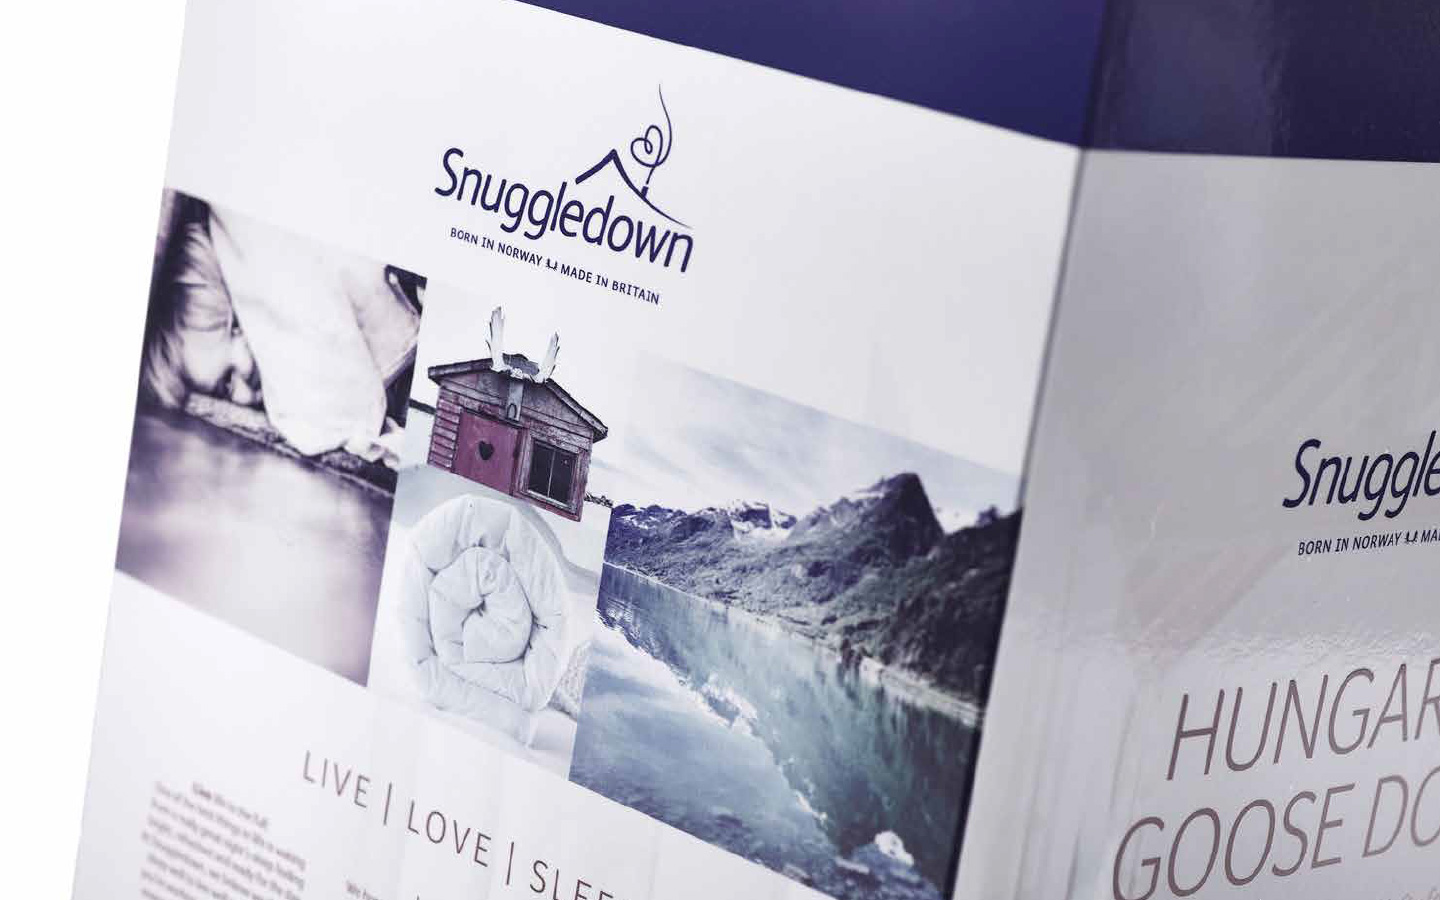 Snuggledown packaging detail